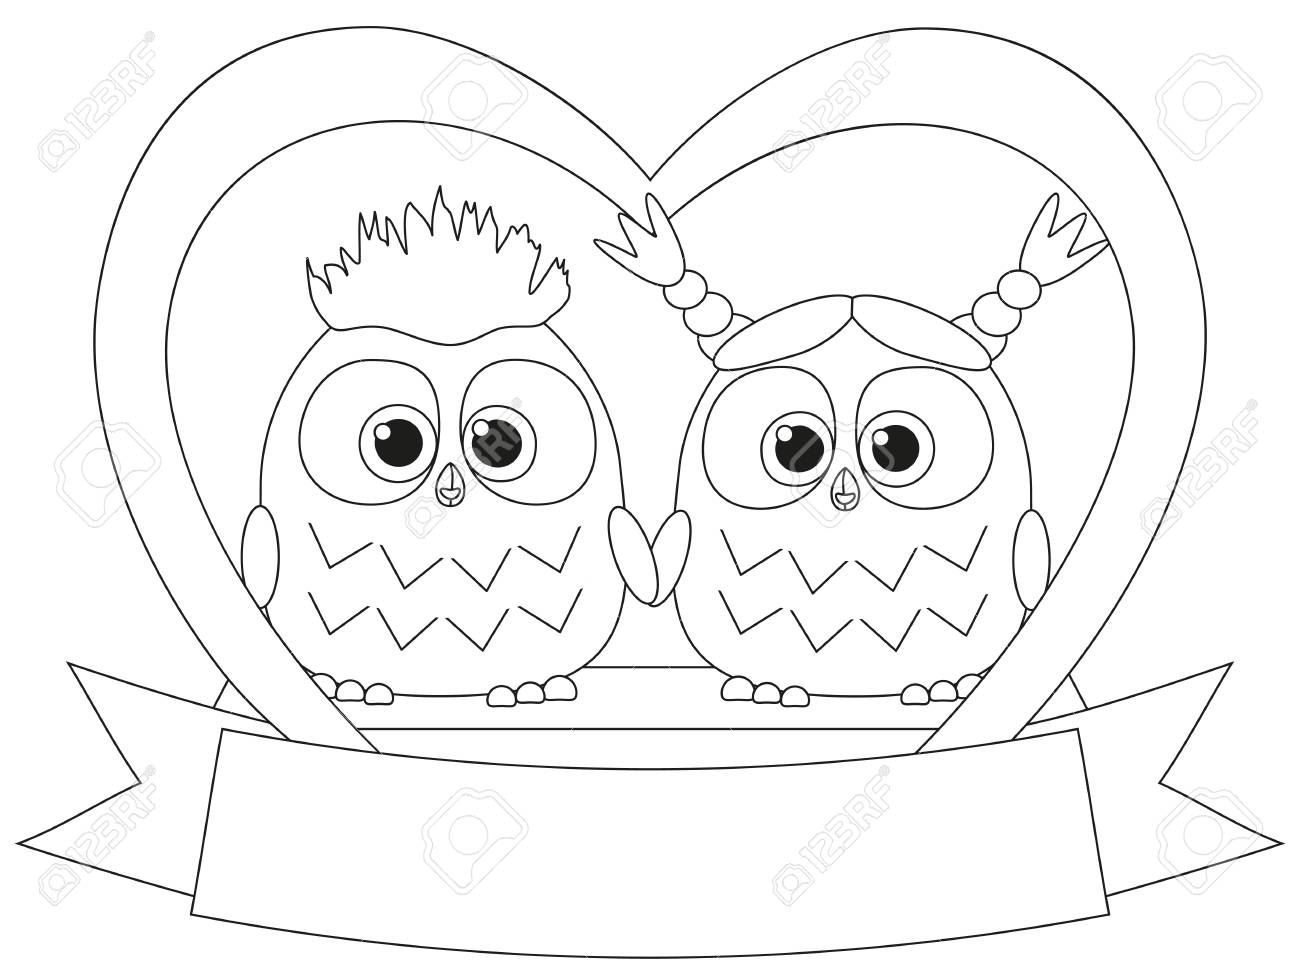 Black and white valentine day poster with an owl couple coloring book page for adults